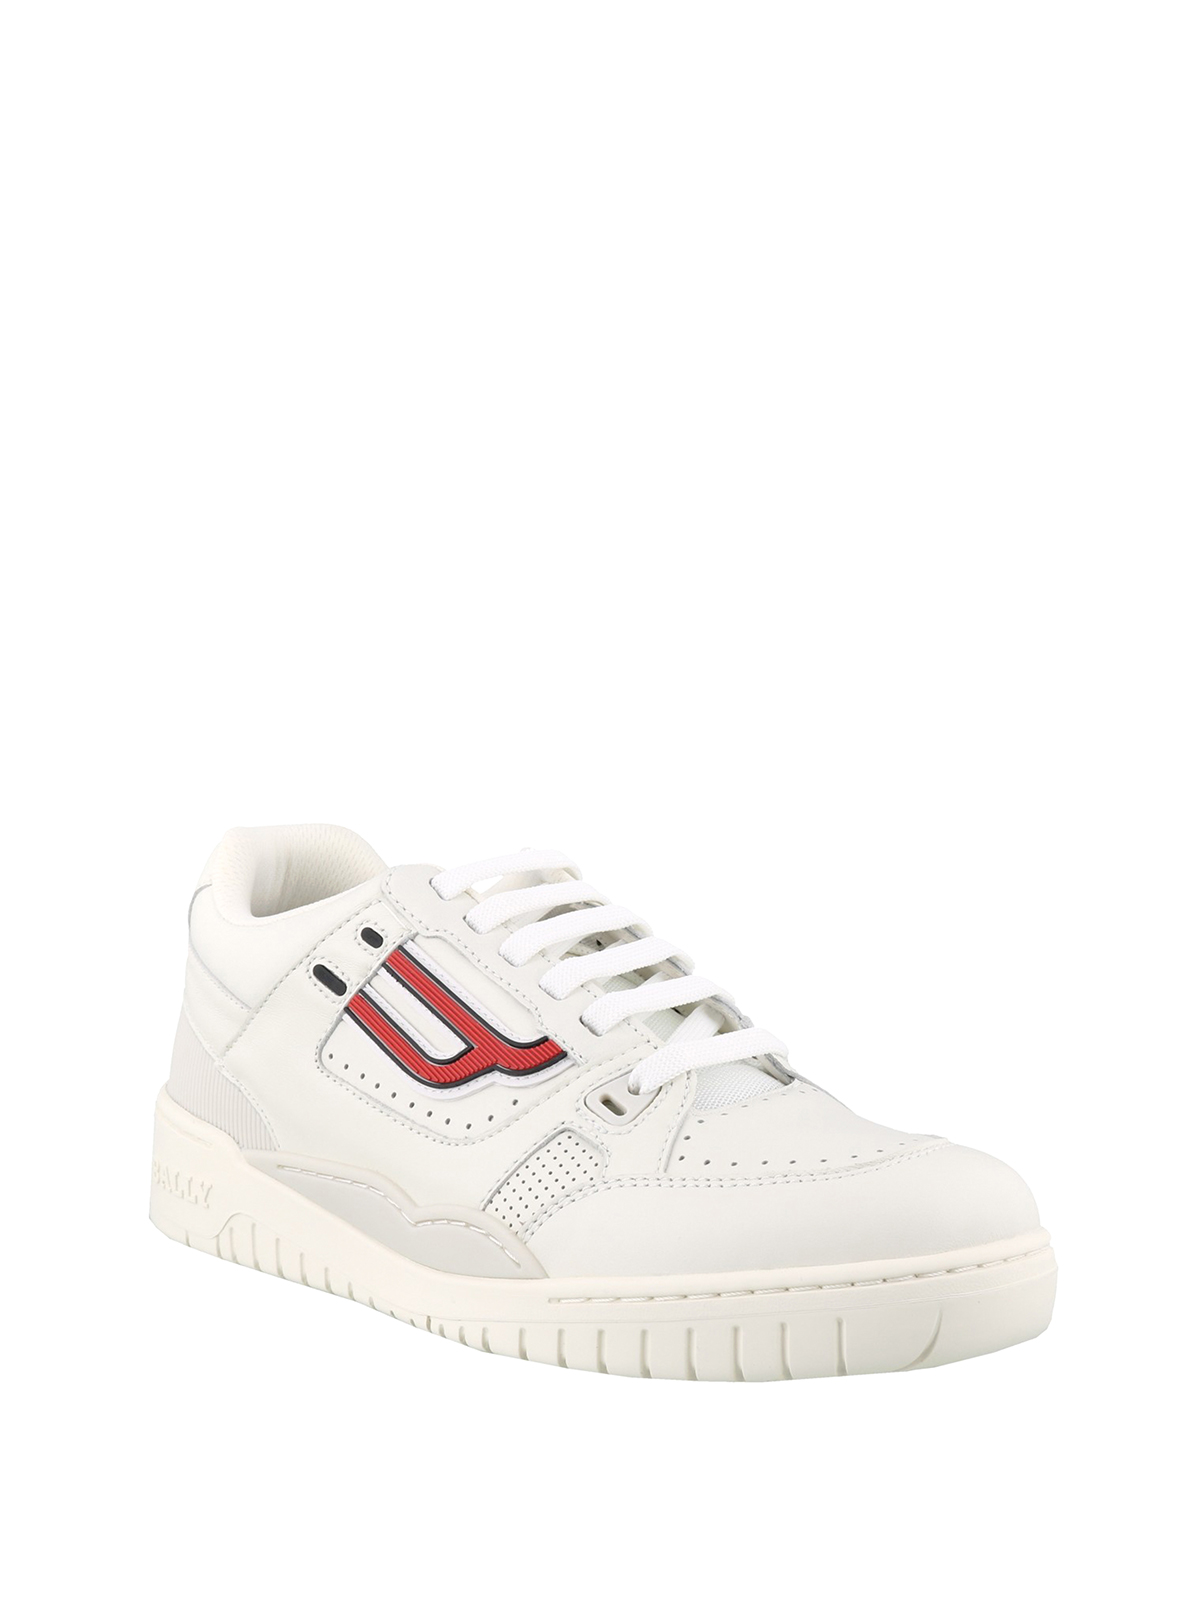 Bally - Champion sneakers - trainers